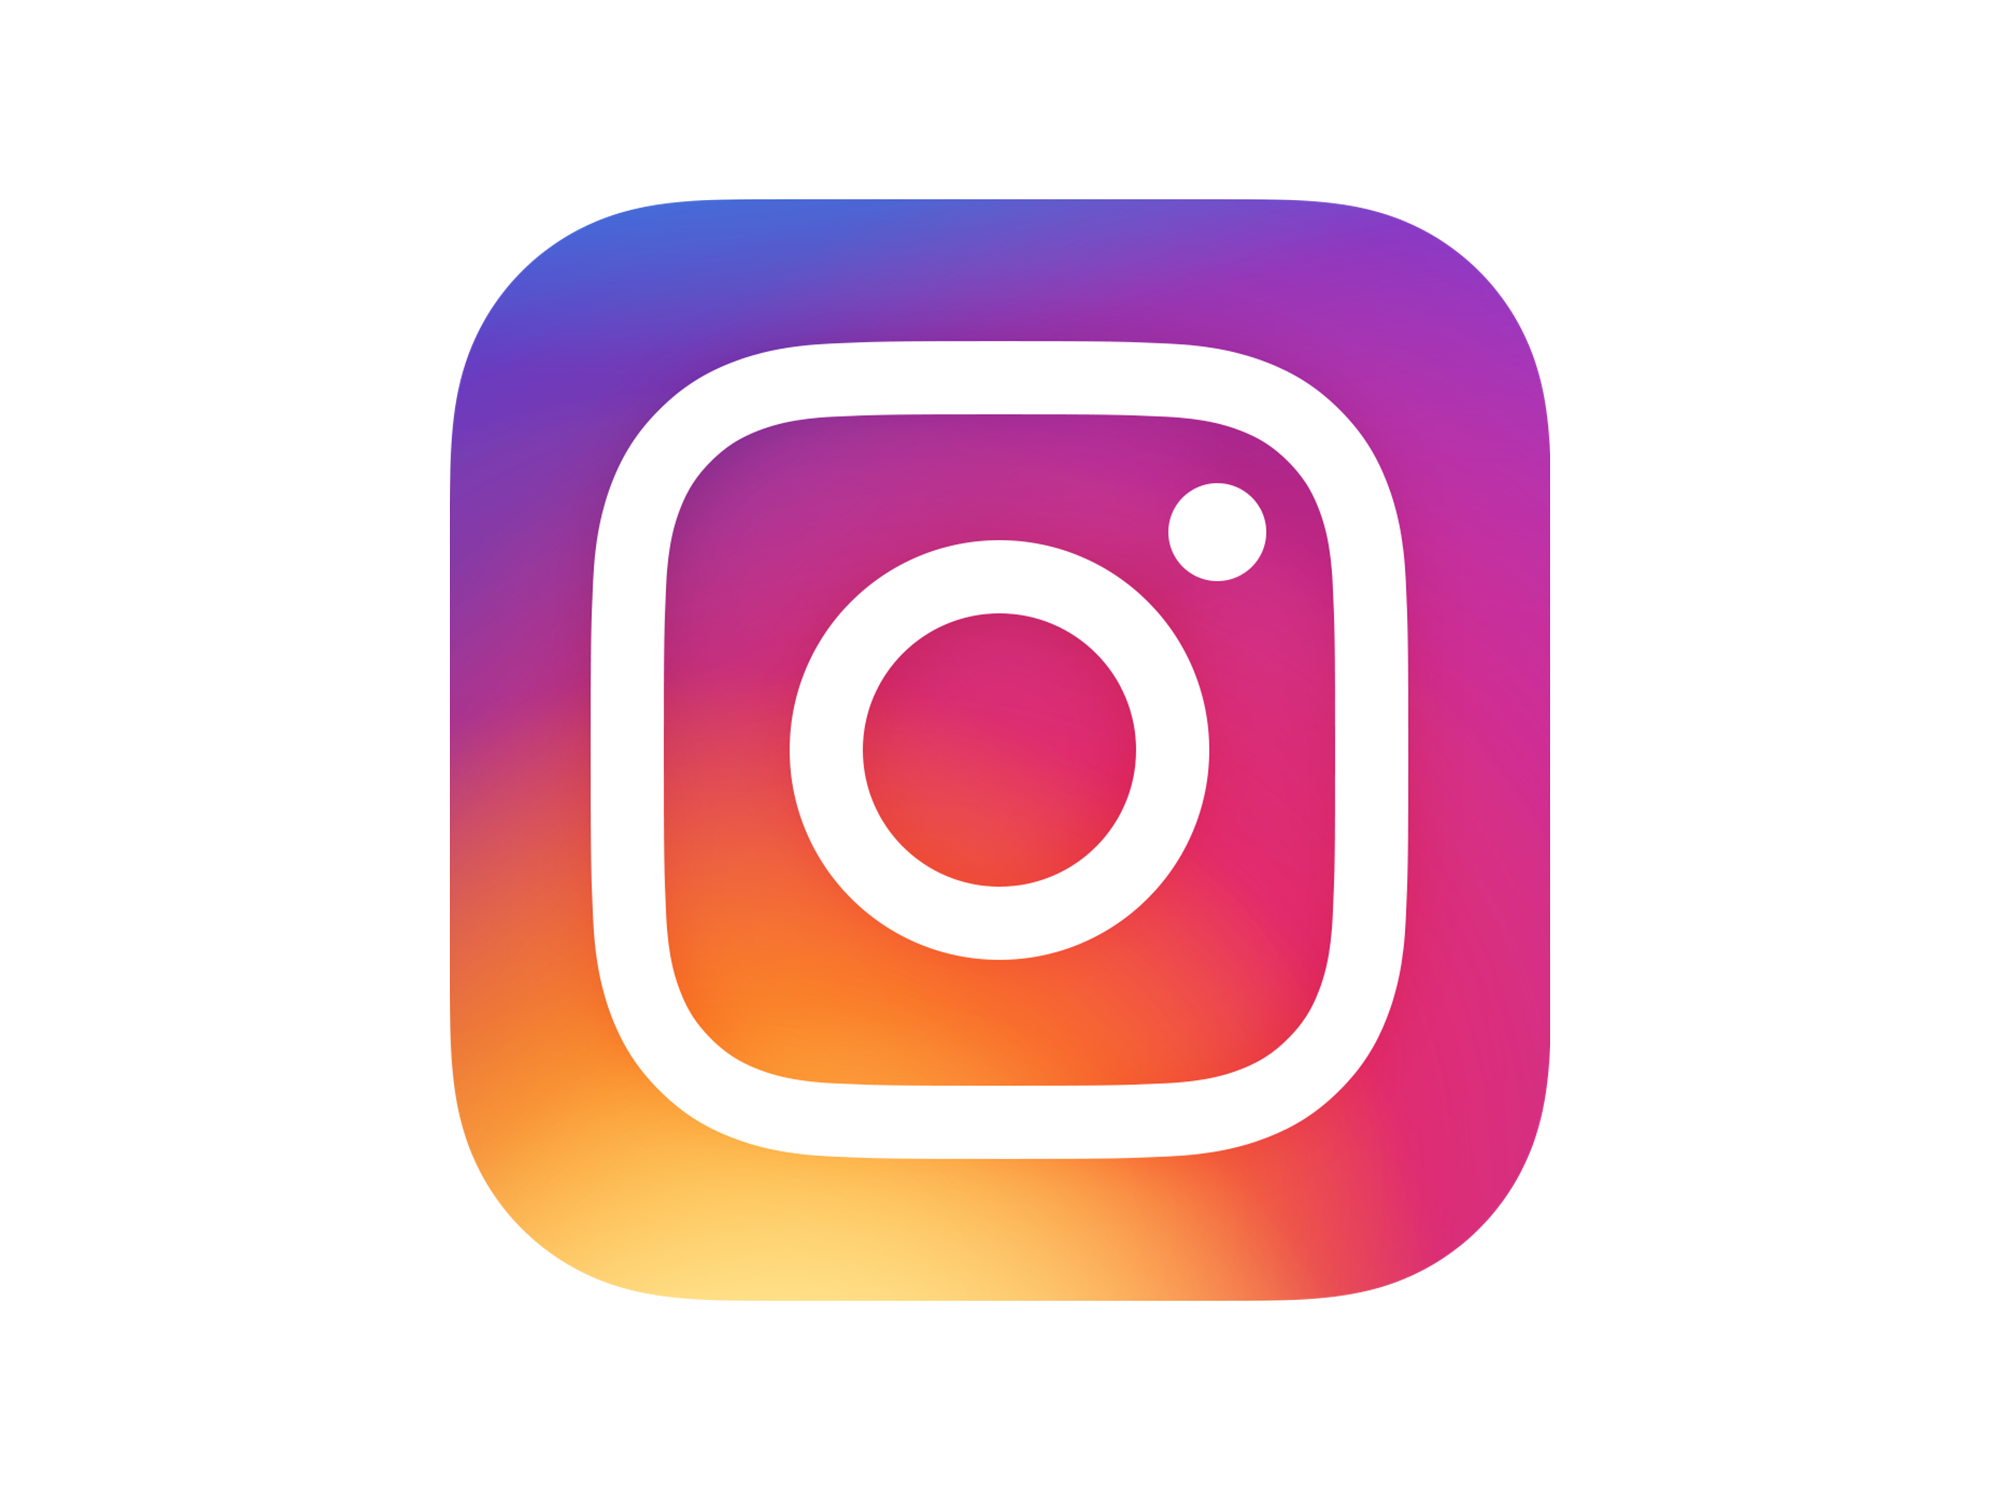 Instagram and 5 other logo changes people hated biocorpaavc Choice Image